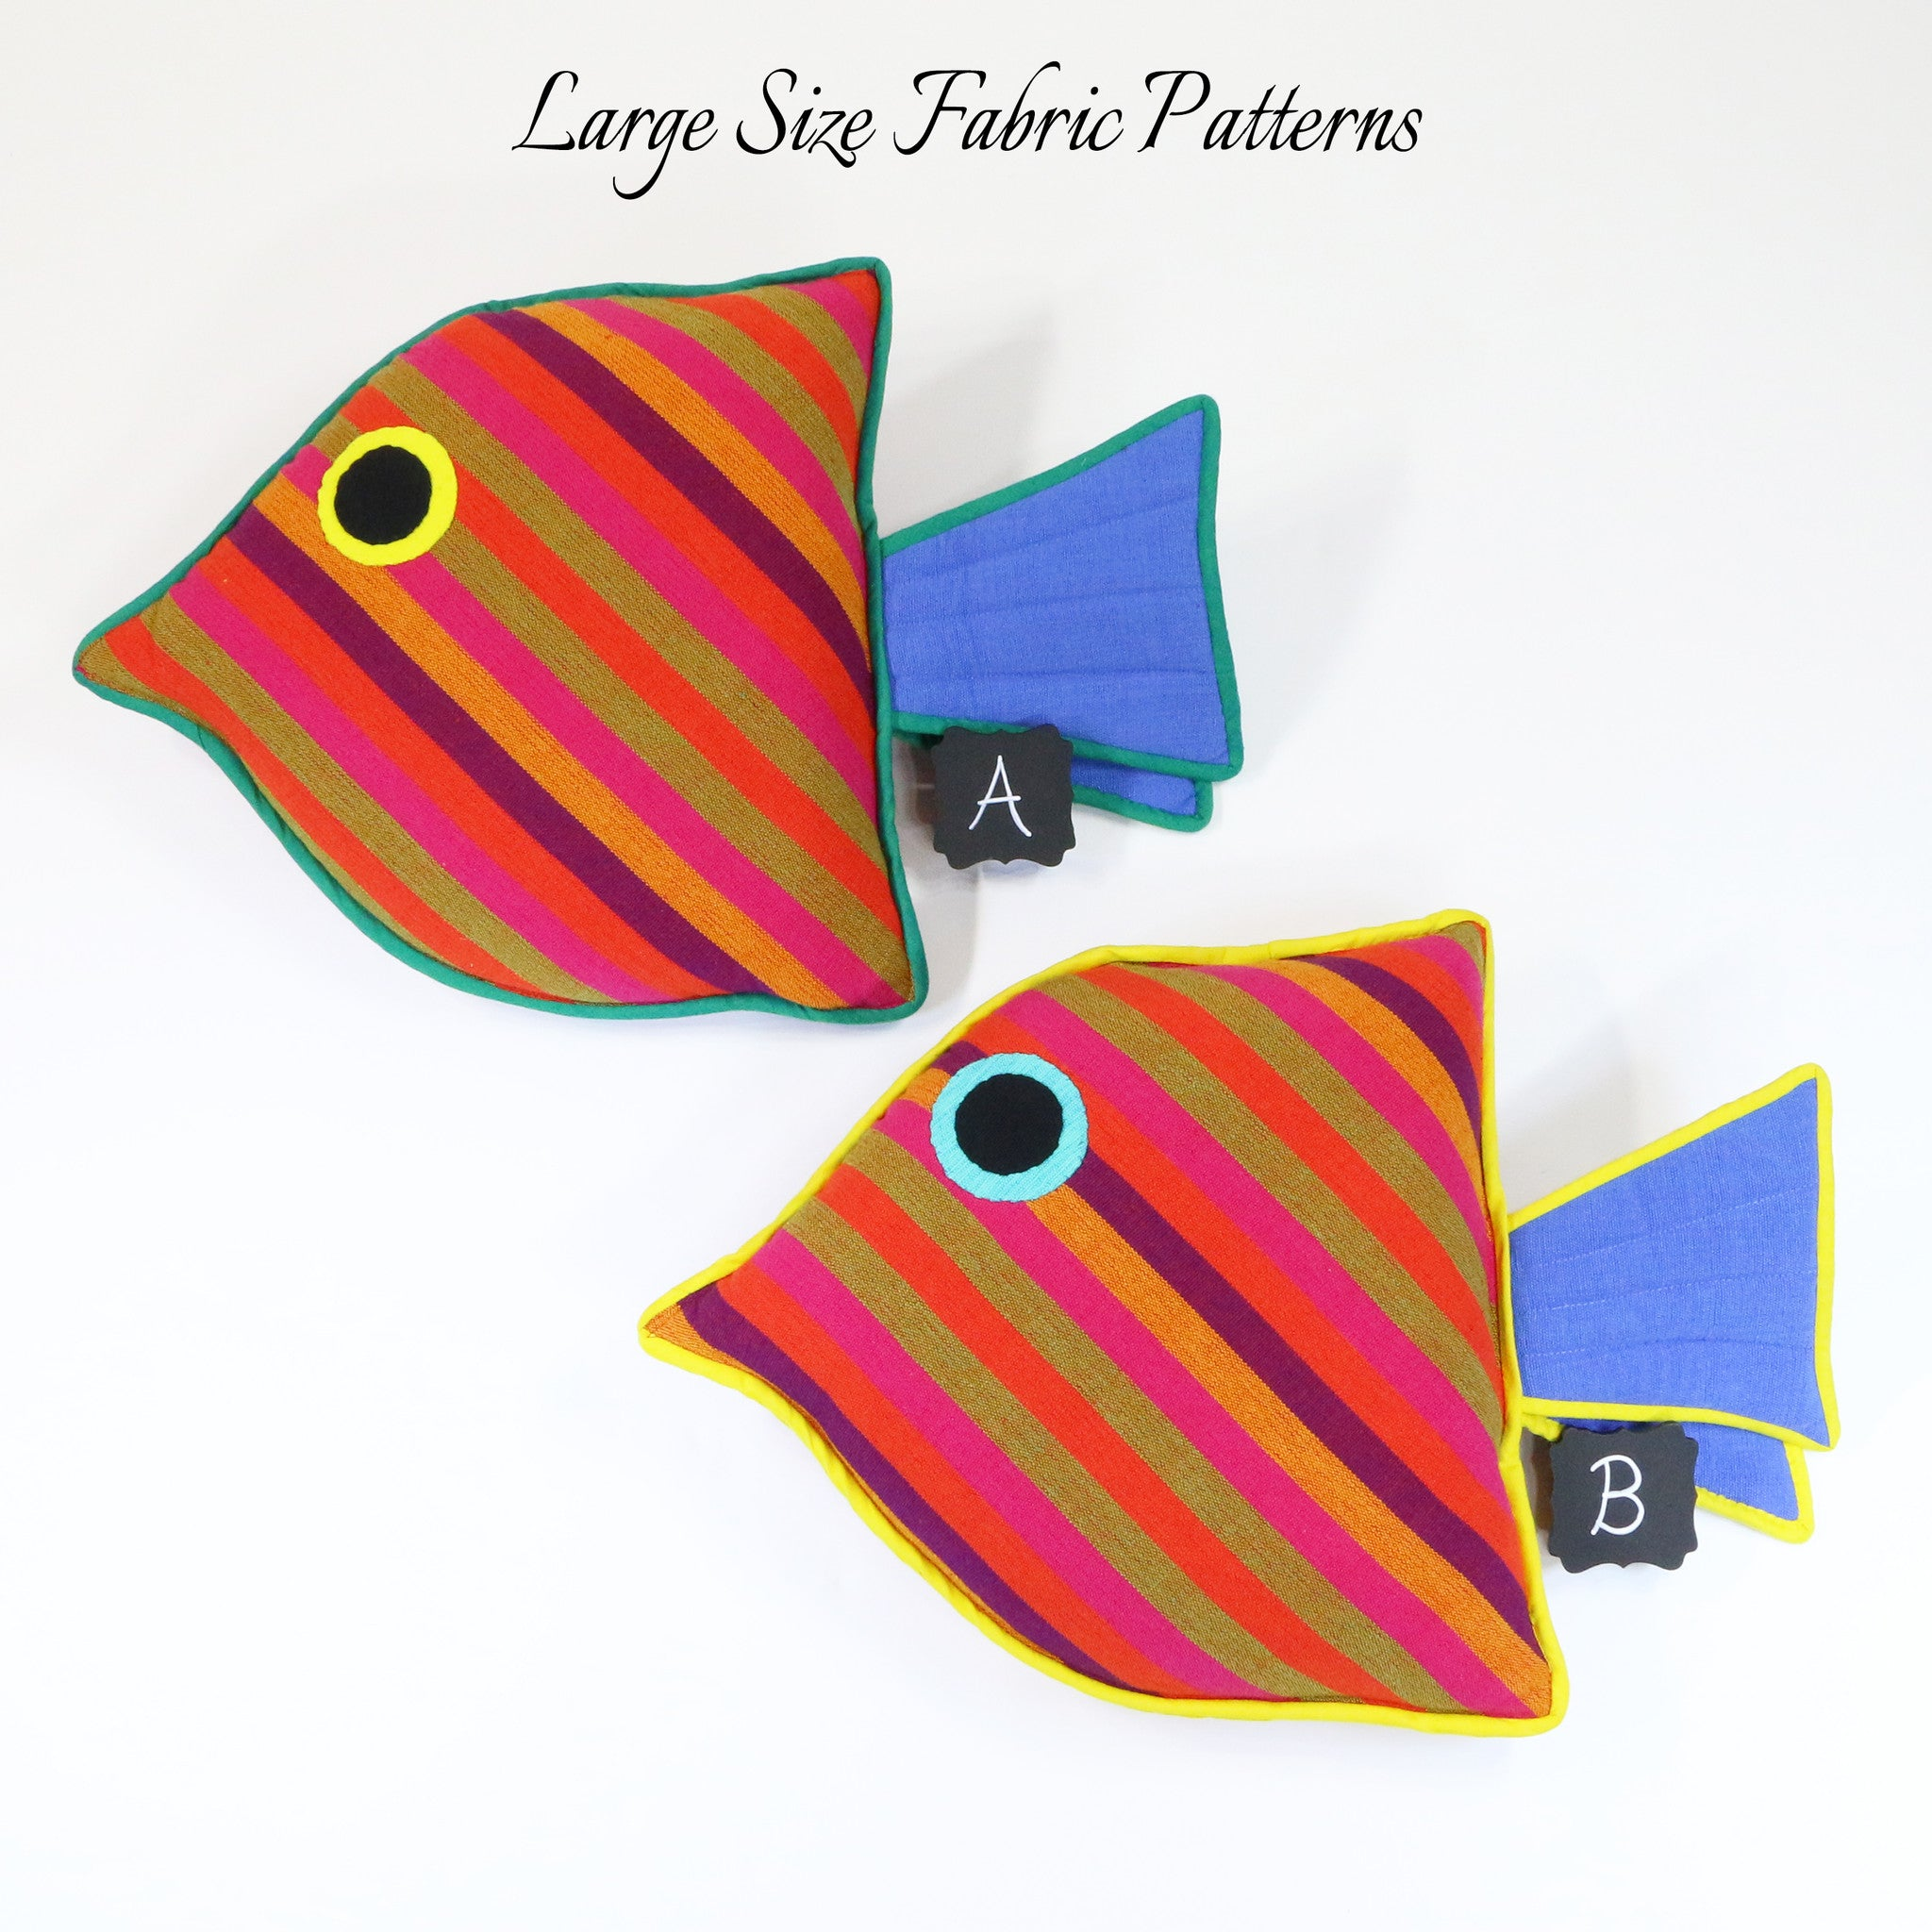 Lydia, the Juvenile Fish – large size fabric patterns shown